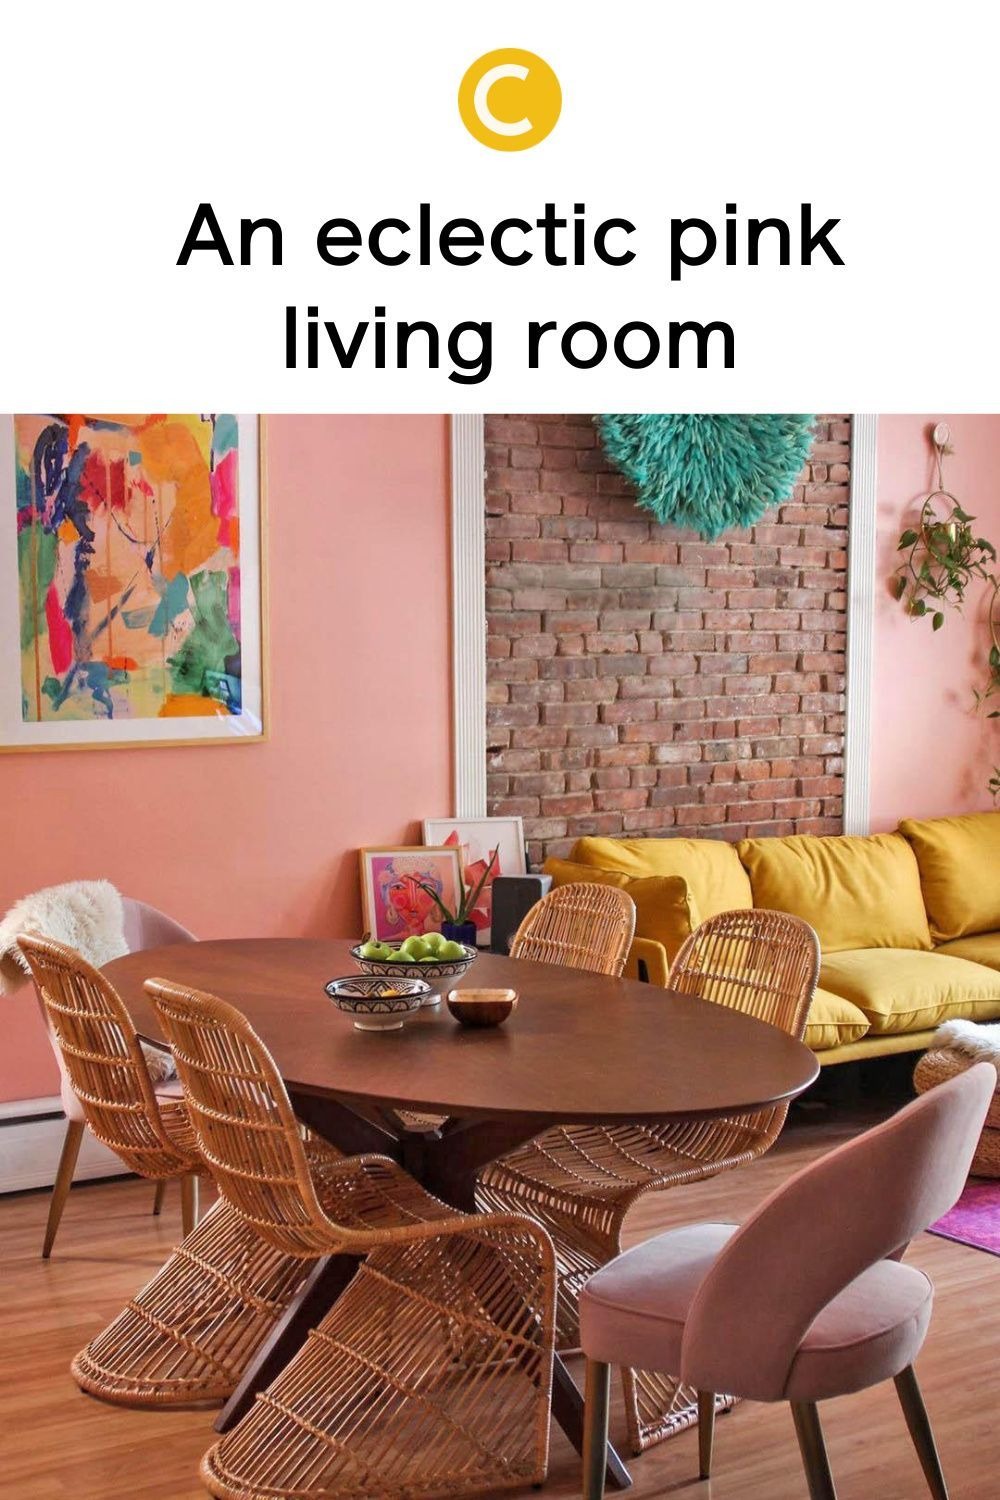 Multiple pink paints, a bright yellow couch, and other vibrant decor elements make this eclectic boho living room a space bursting with color. Get inspired to try this color palette now on our blog. #livingroomdecor #eclecticdecor #bohodecor